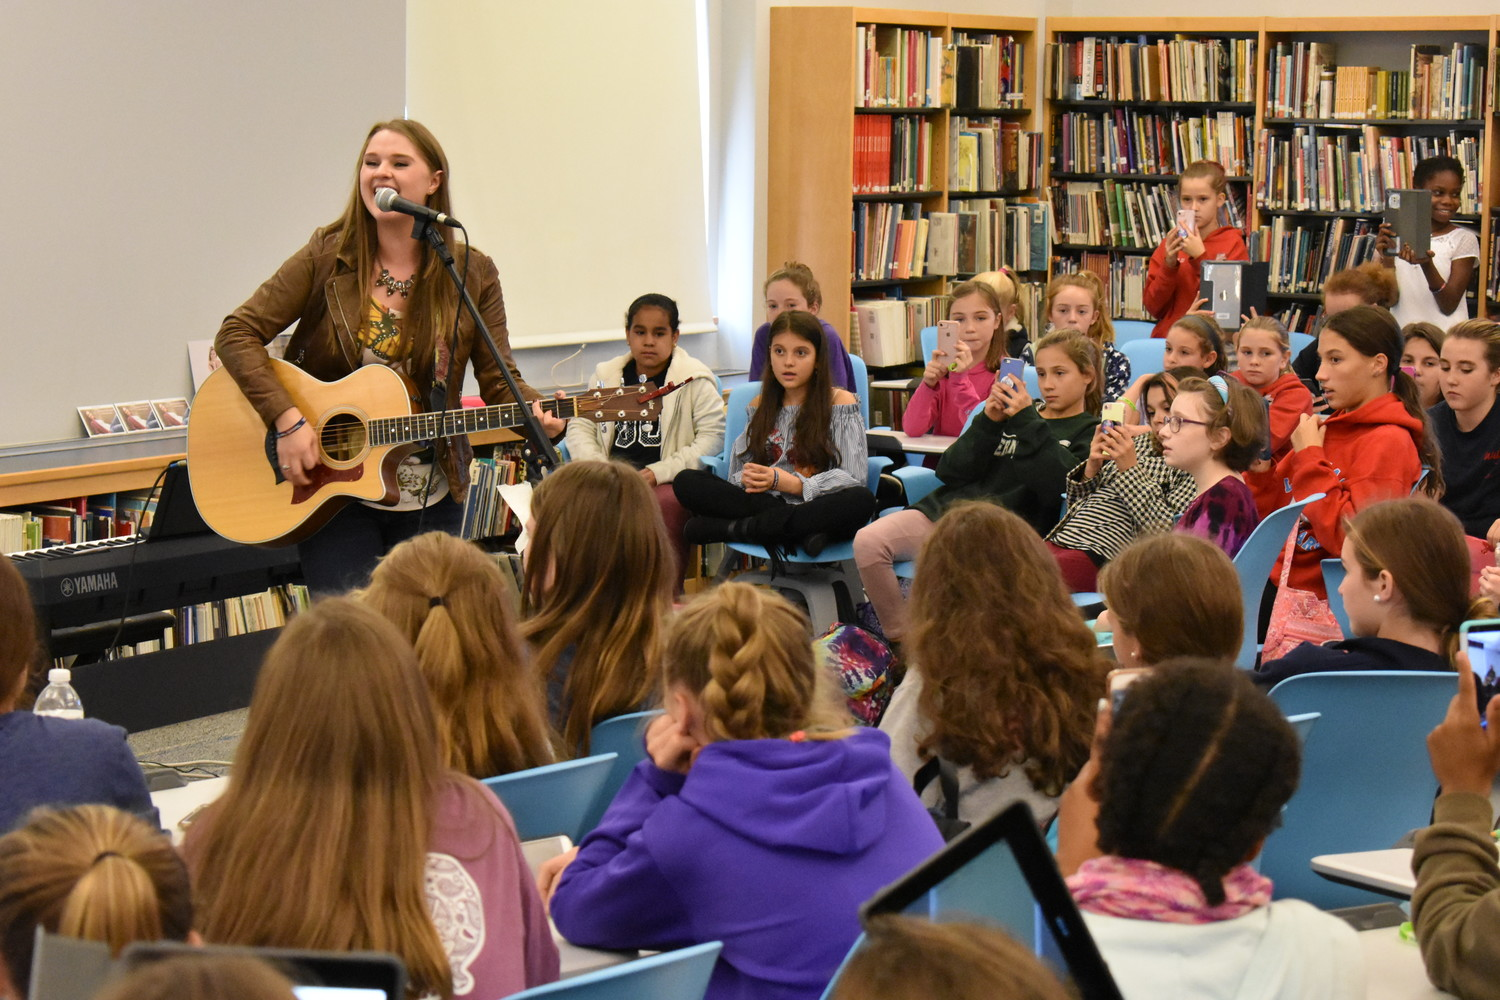 Lizzie Sider, a budding country pop singer, stopped by South Side Middle School on Nov. 2 as part of her nationwide bullying prevention campaign.